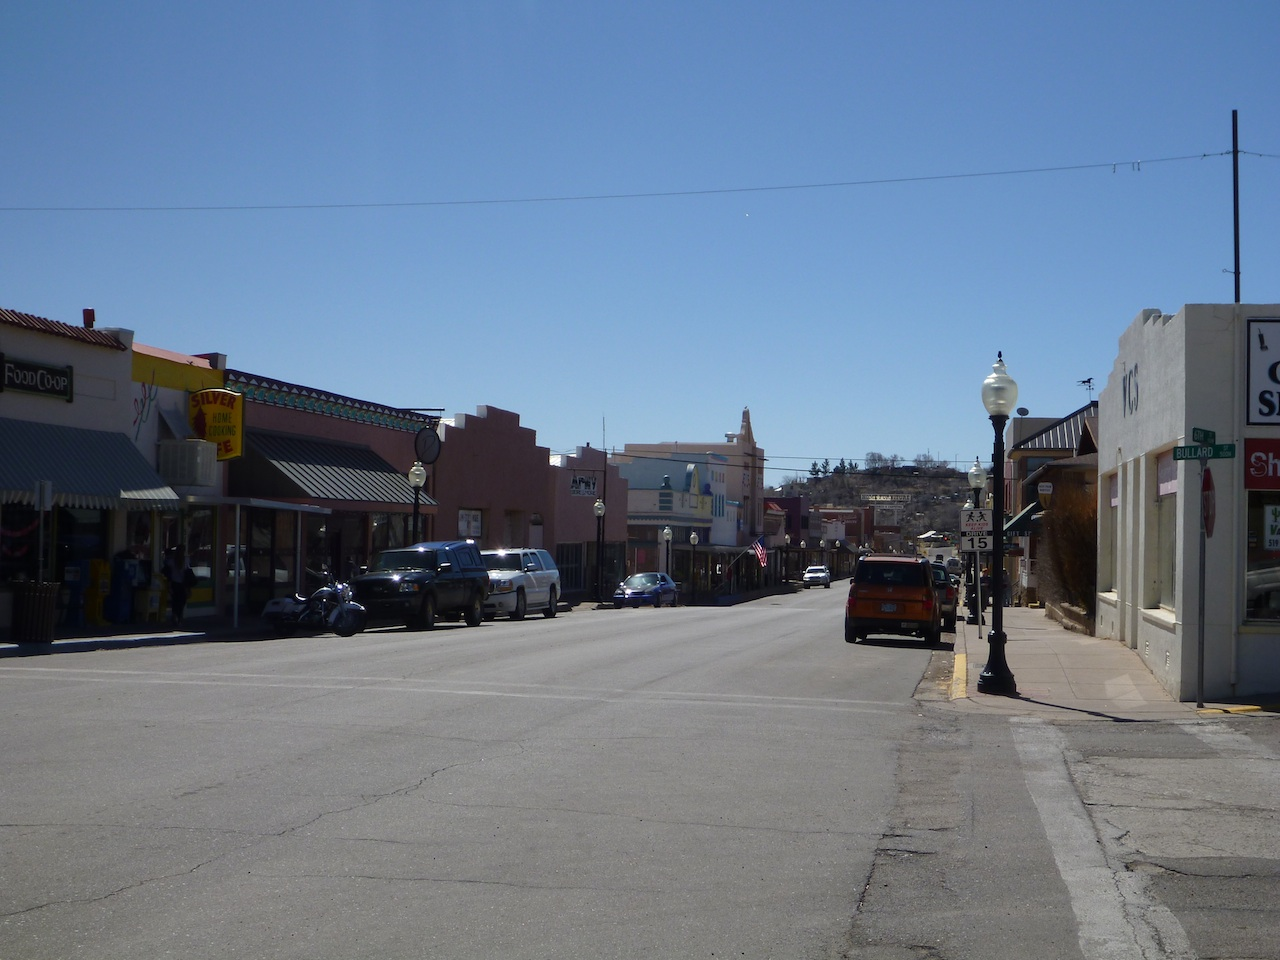 One Of The Downtown Historical Streets In Silver City, NM